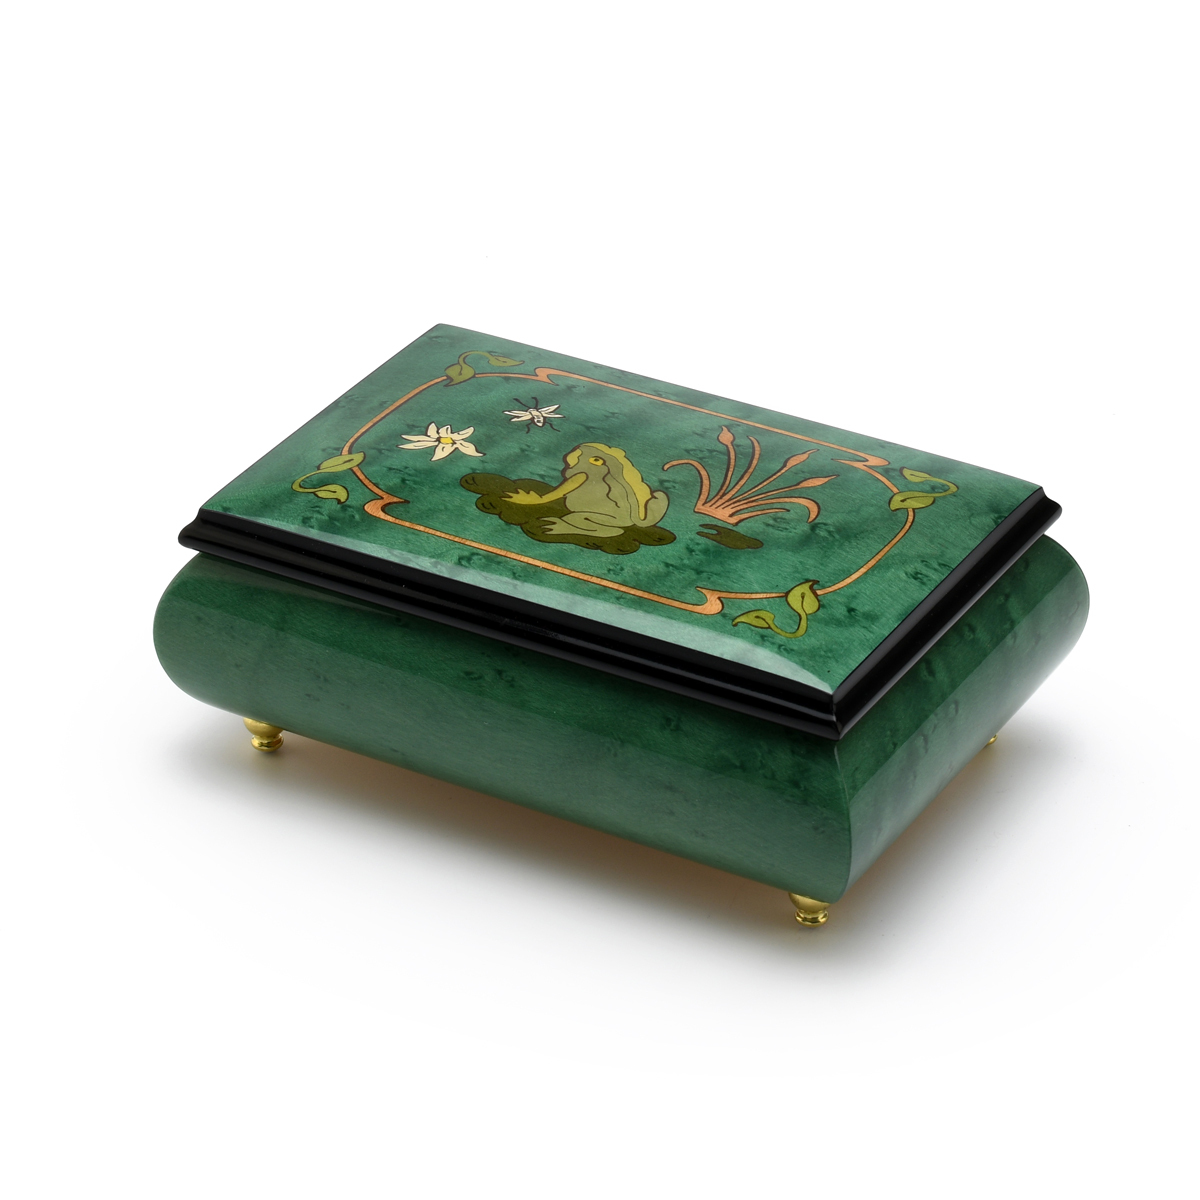 Brilliant Green Stain Musical Jewelry Box with Frog on Lily Pad with Fireflies Wood Inlay